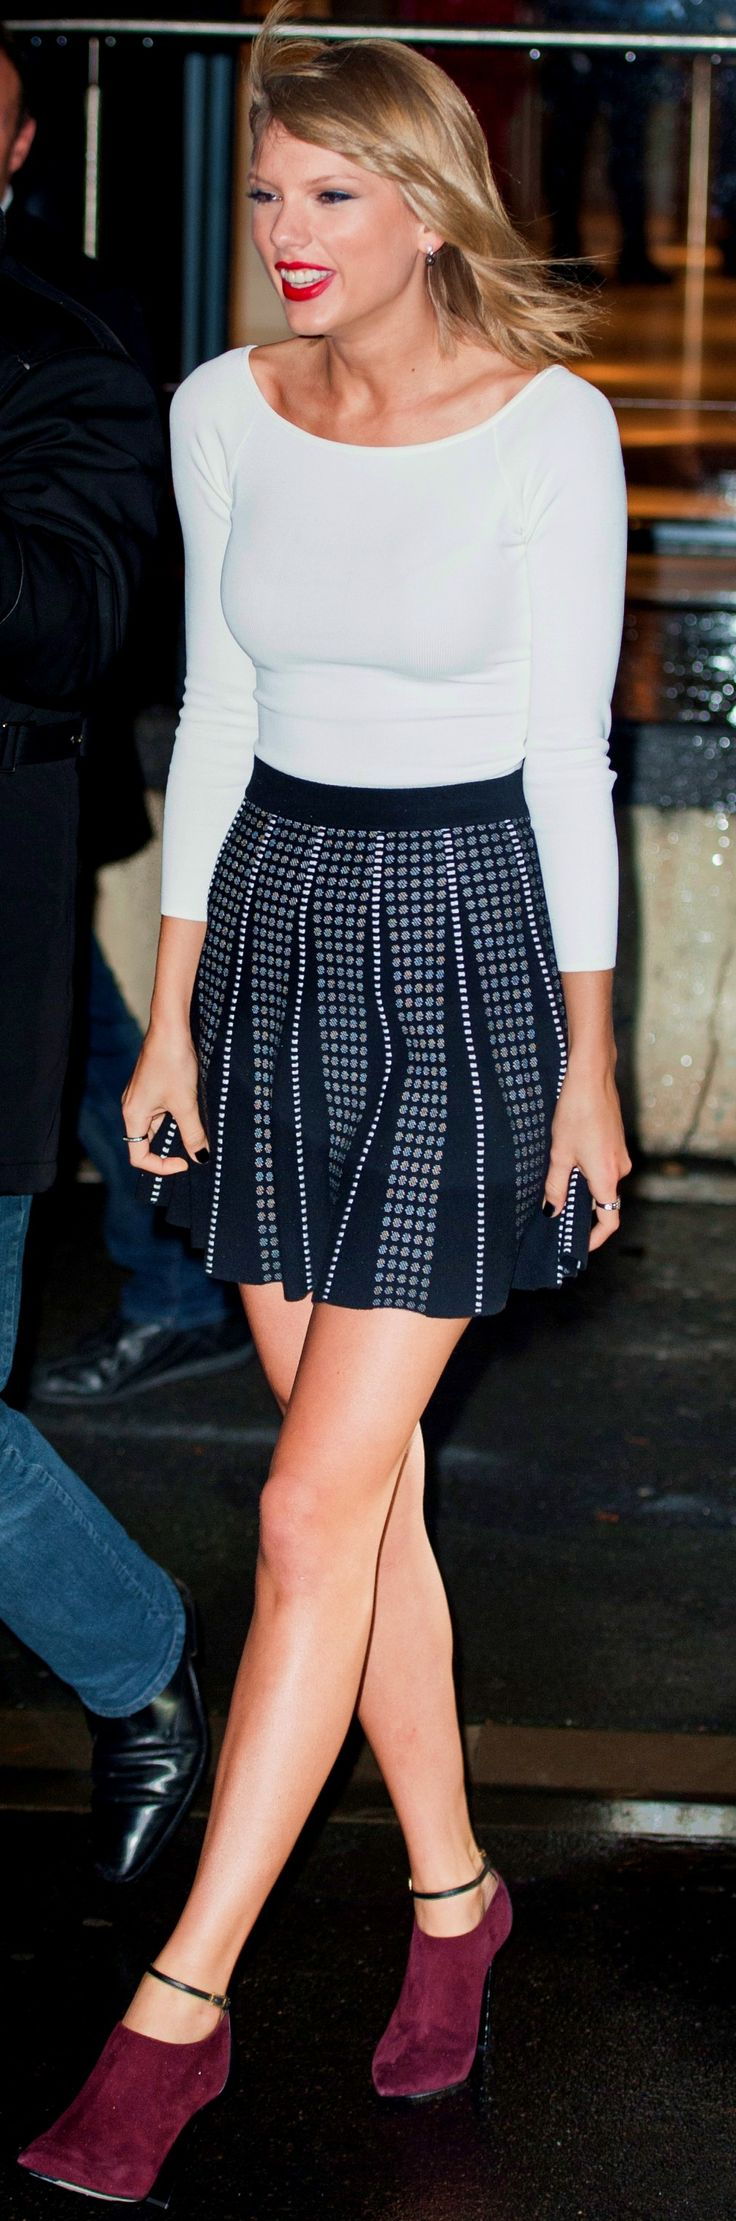 Taylor Swift ; Leaving NRJ Radio, Paris, October 2014, BCBG Max Azria skirt & Jimmy Choo booties. Cute skirt !